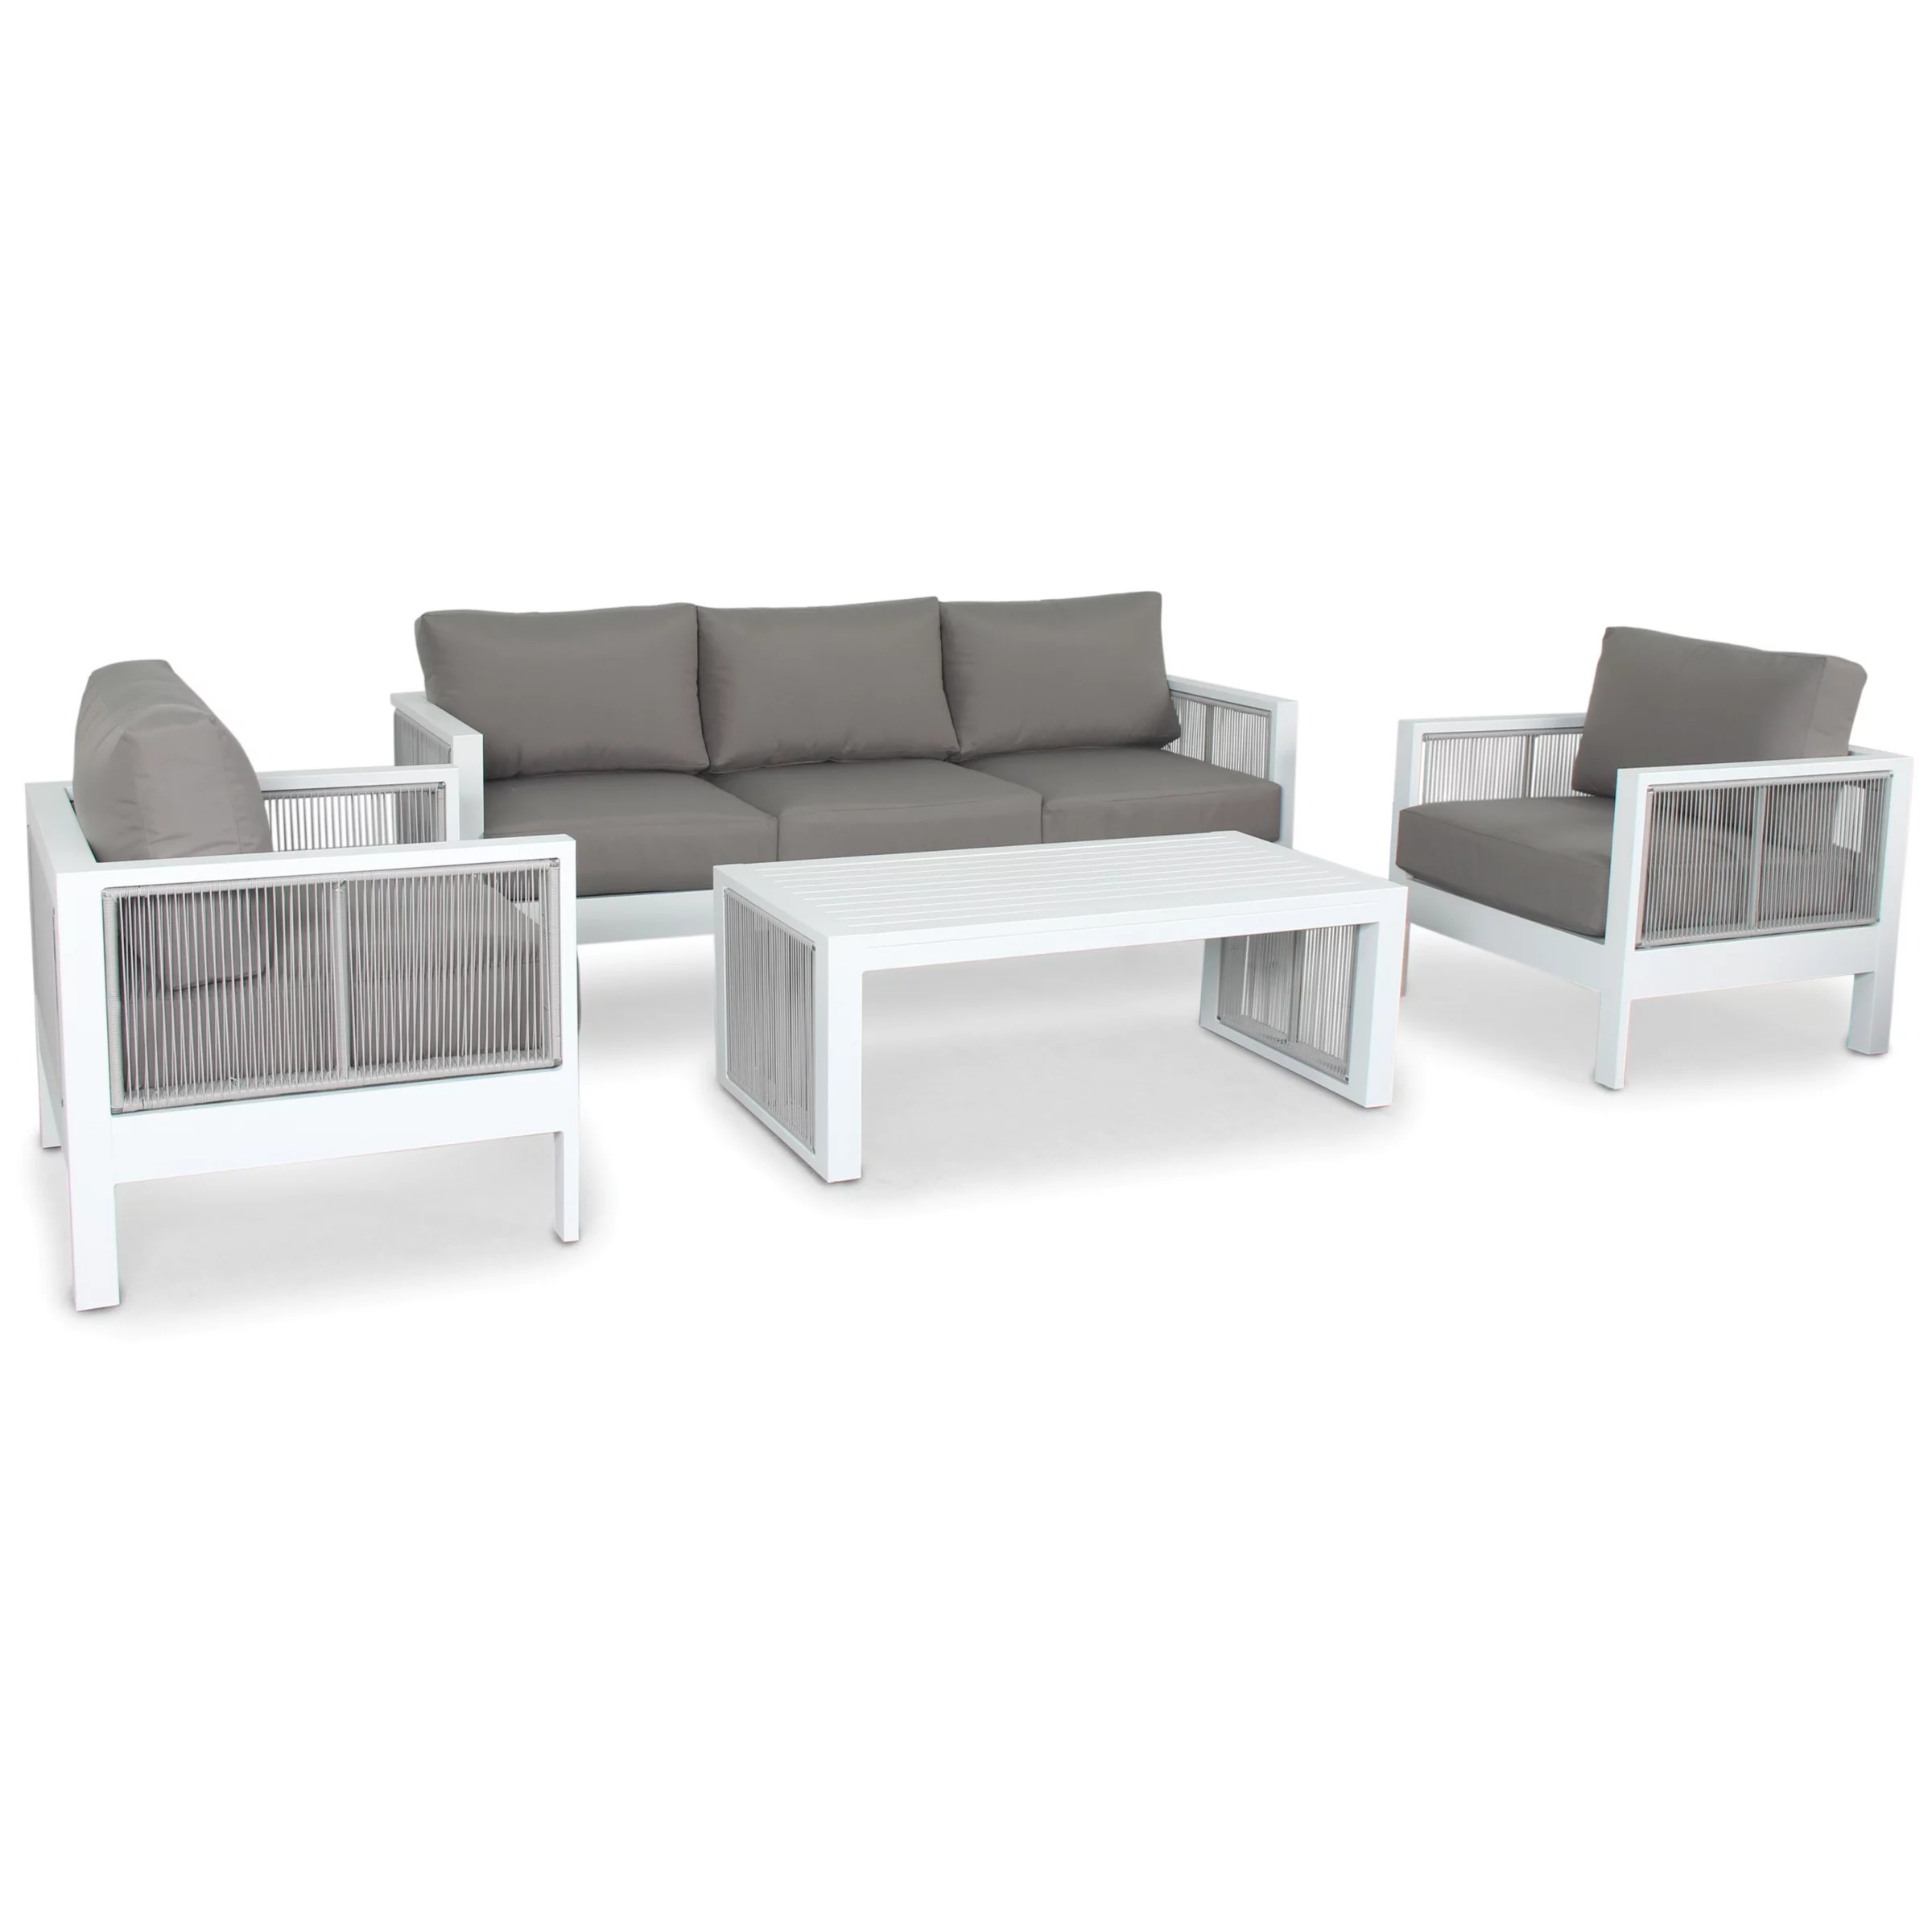 Kettler Lounge Kettler Katarina 5 Seater Garden Lounge Table And Chairs Set